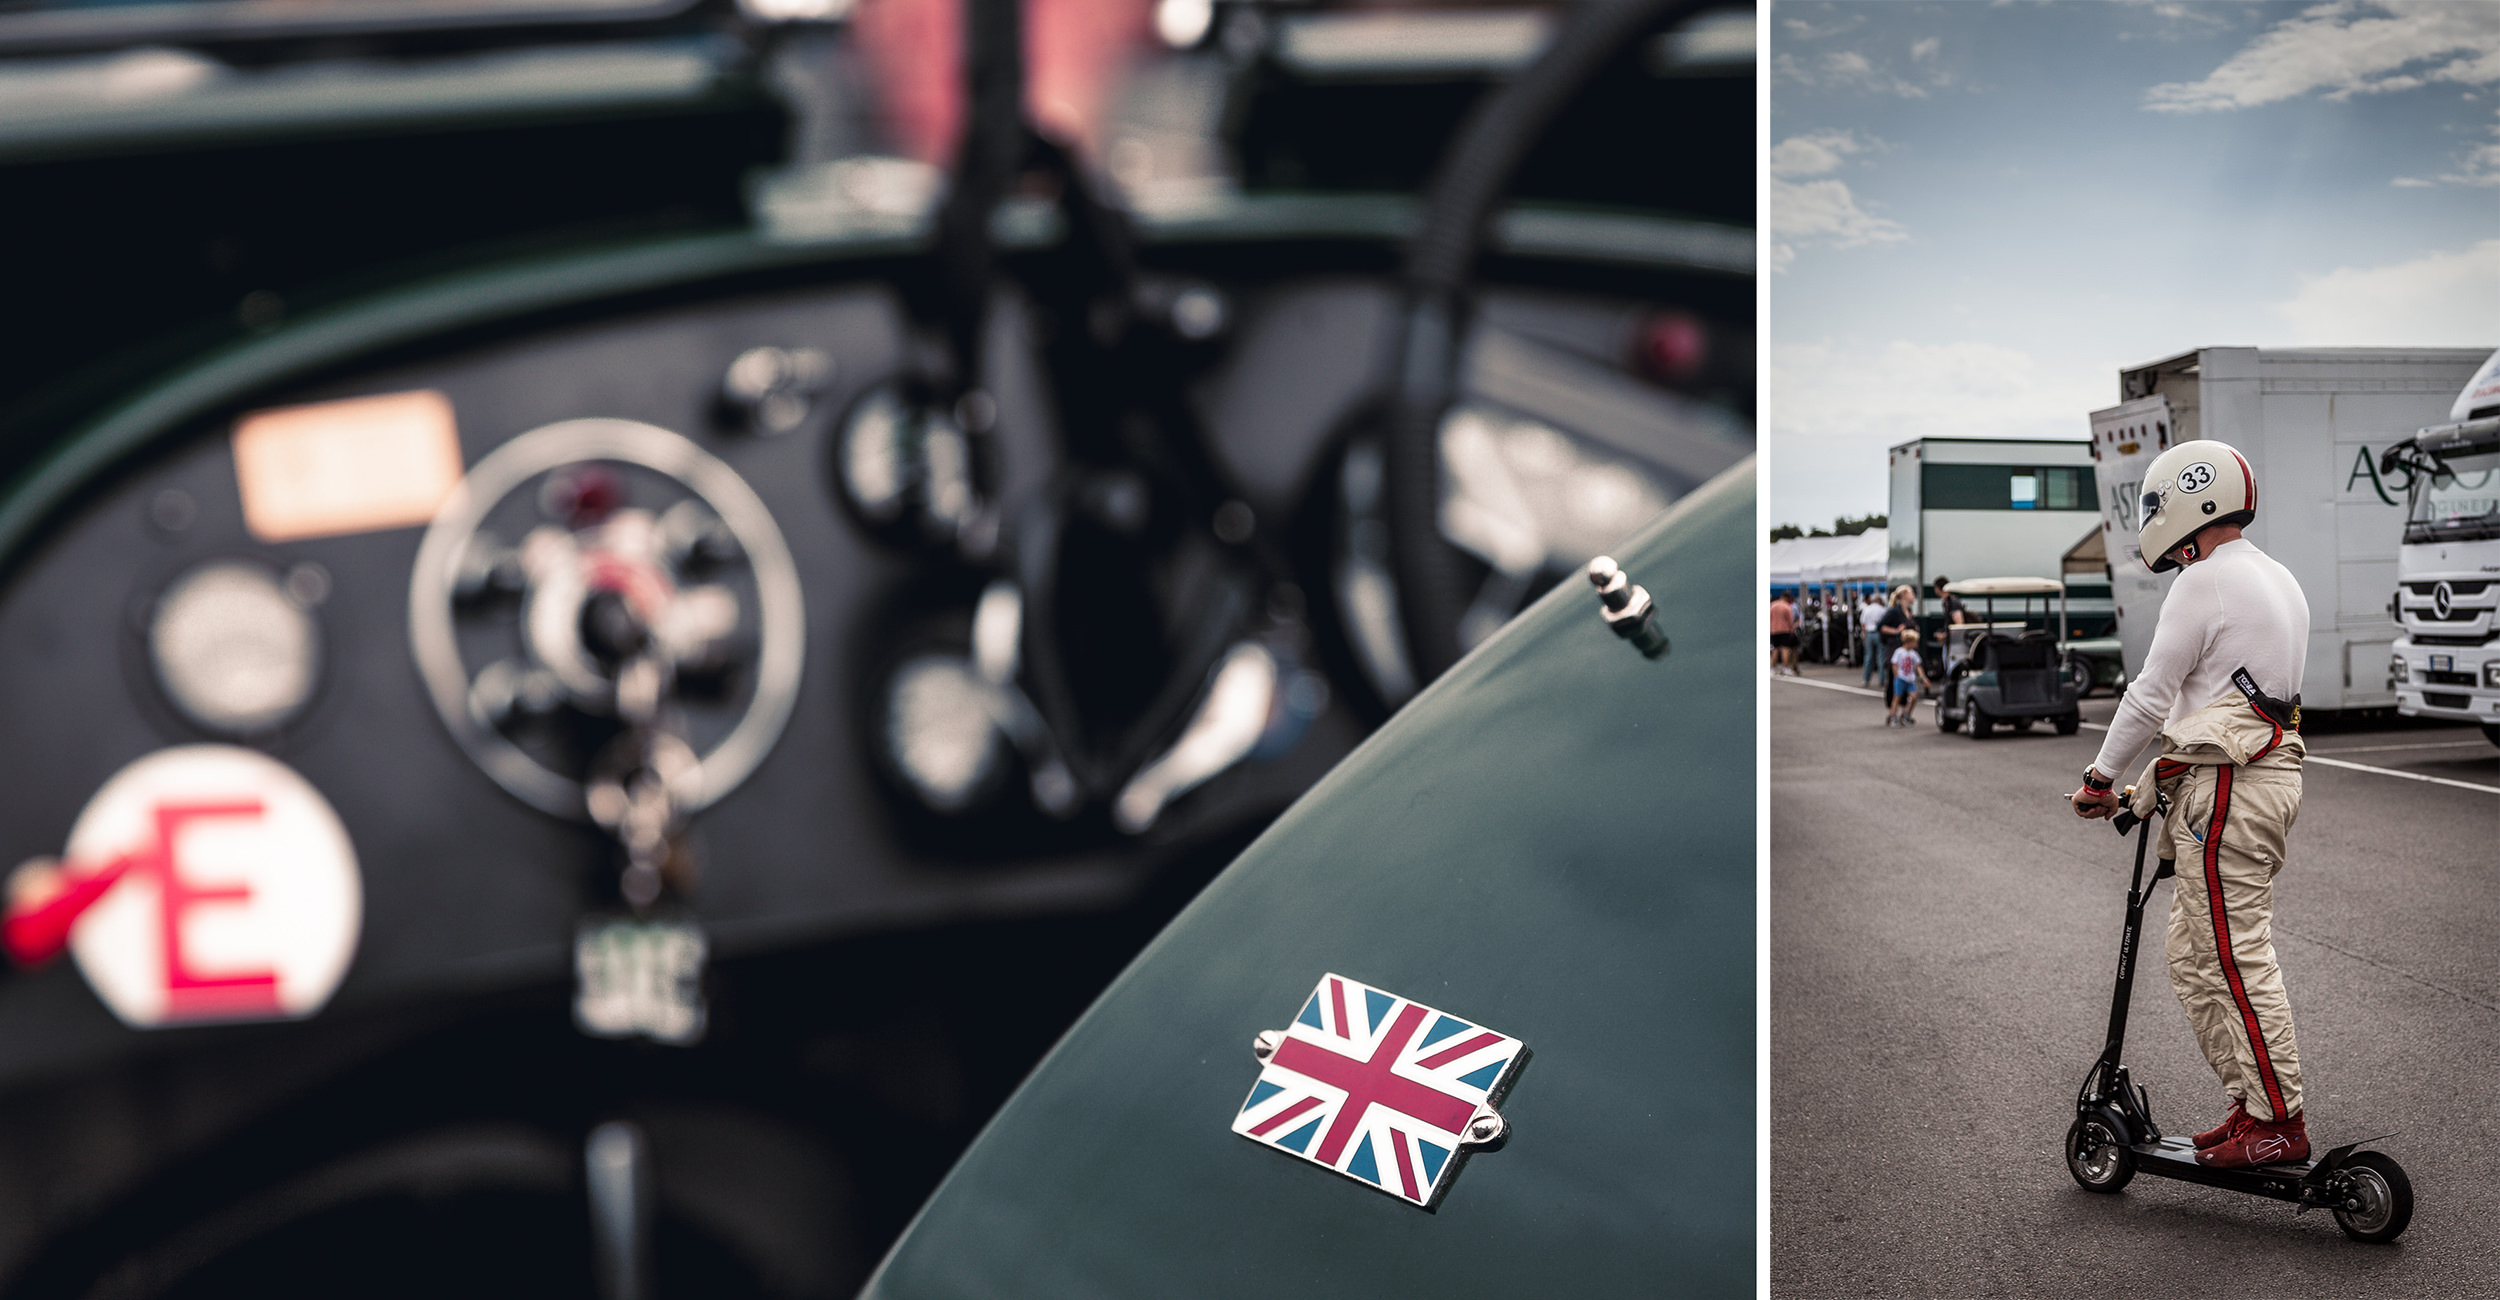 Silverstone Classic 2019 - Union Jack and Safety First!